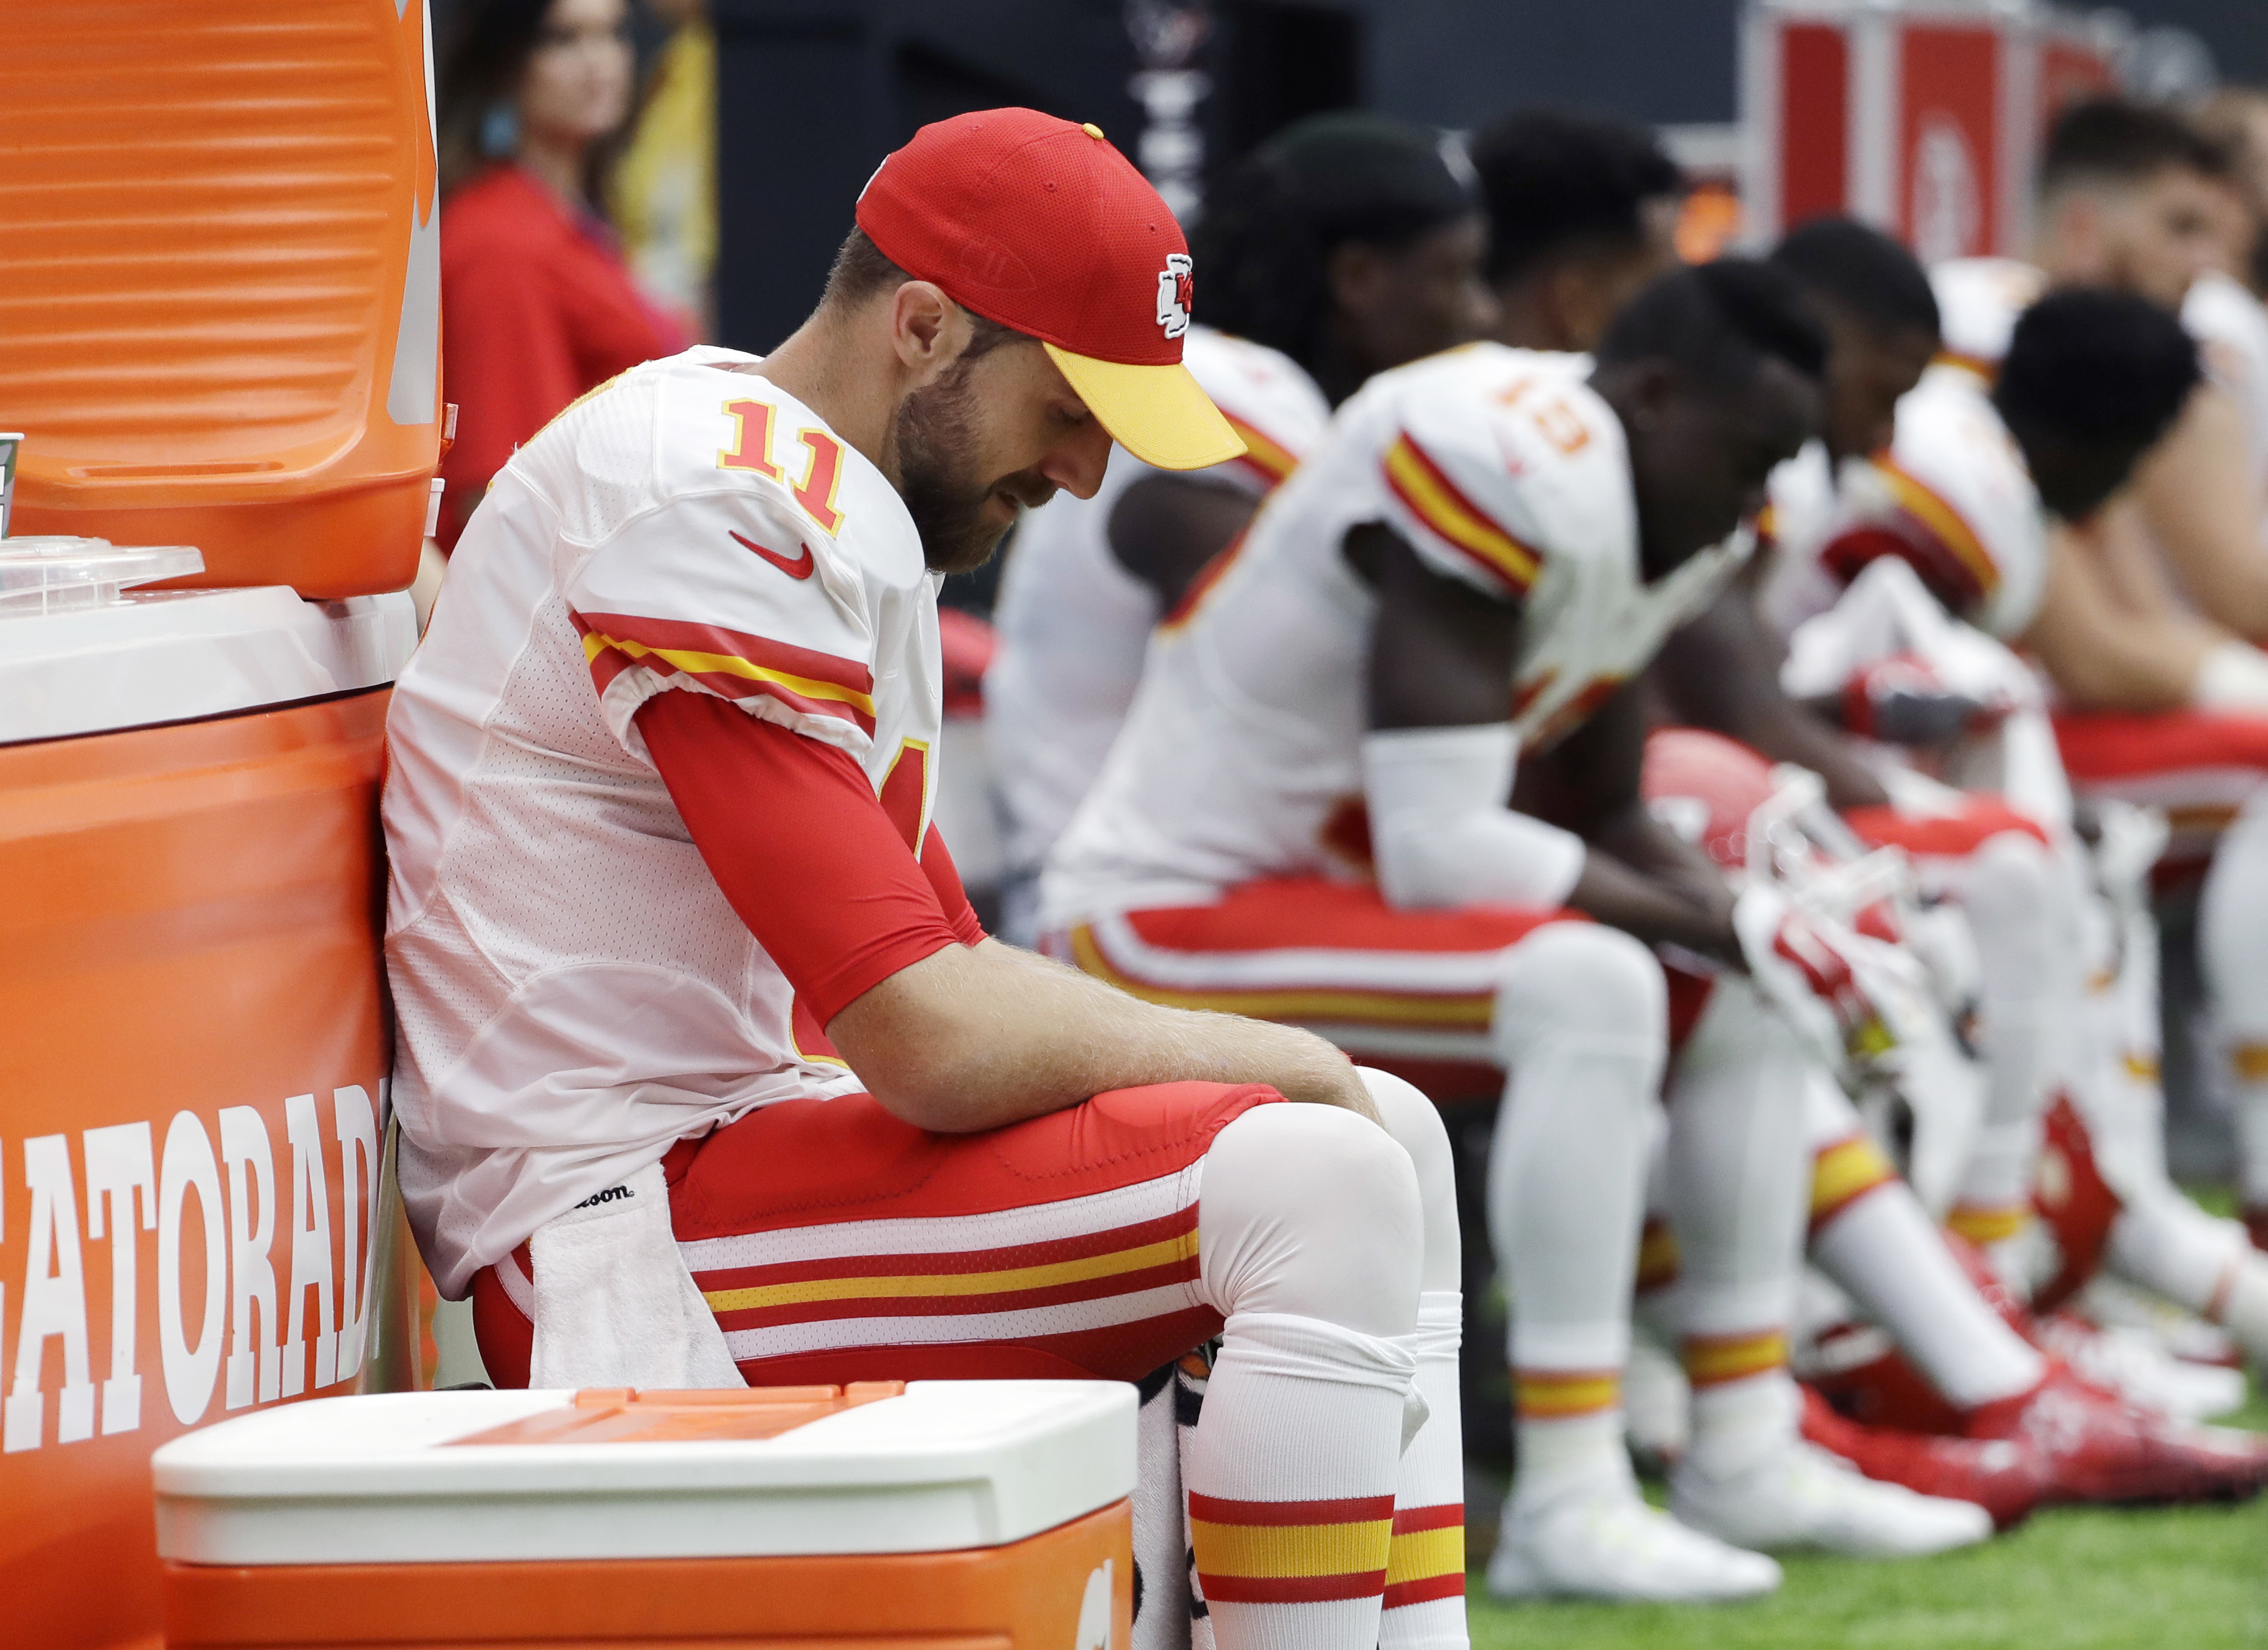 FILE - In this Sept. 18, 2016, file photo, Kansas City Chiefs quarterback Alex Smith (11) sits on the sideline during the second half of an NFL football game against the Houston Texans, in Houston. The Chiefs couldnt get out of their own way in a frustrat